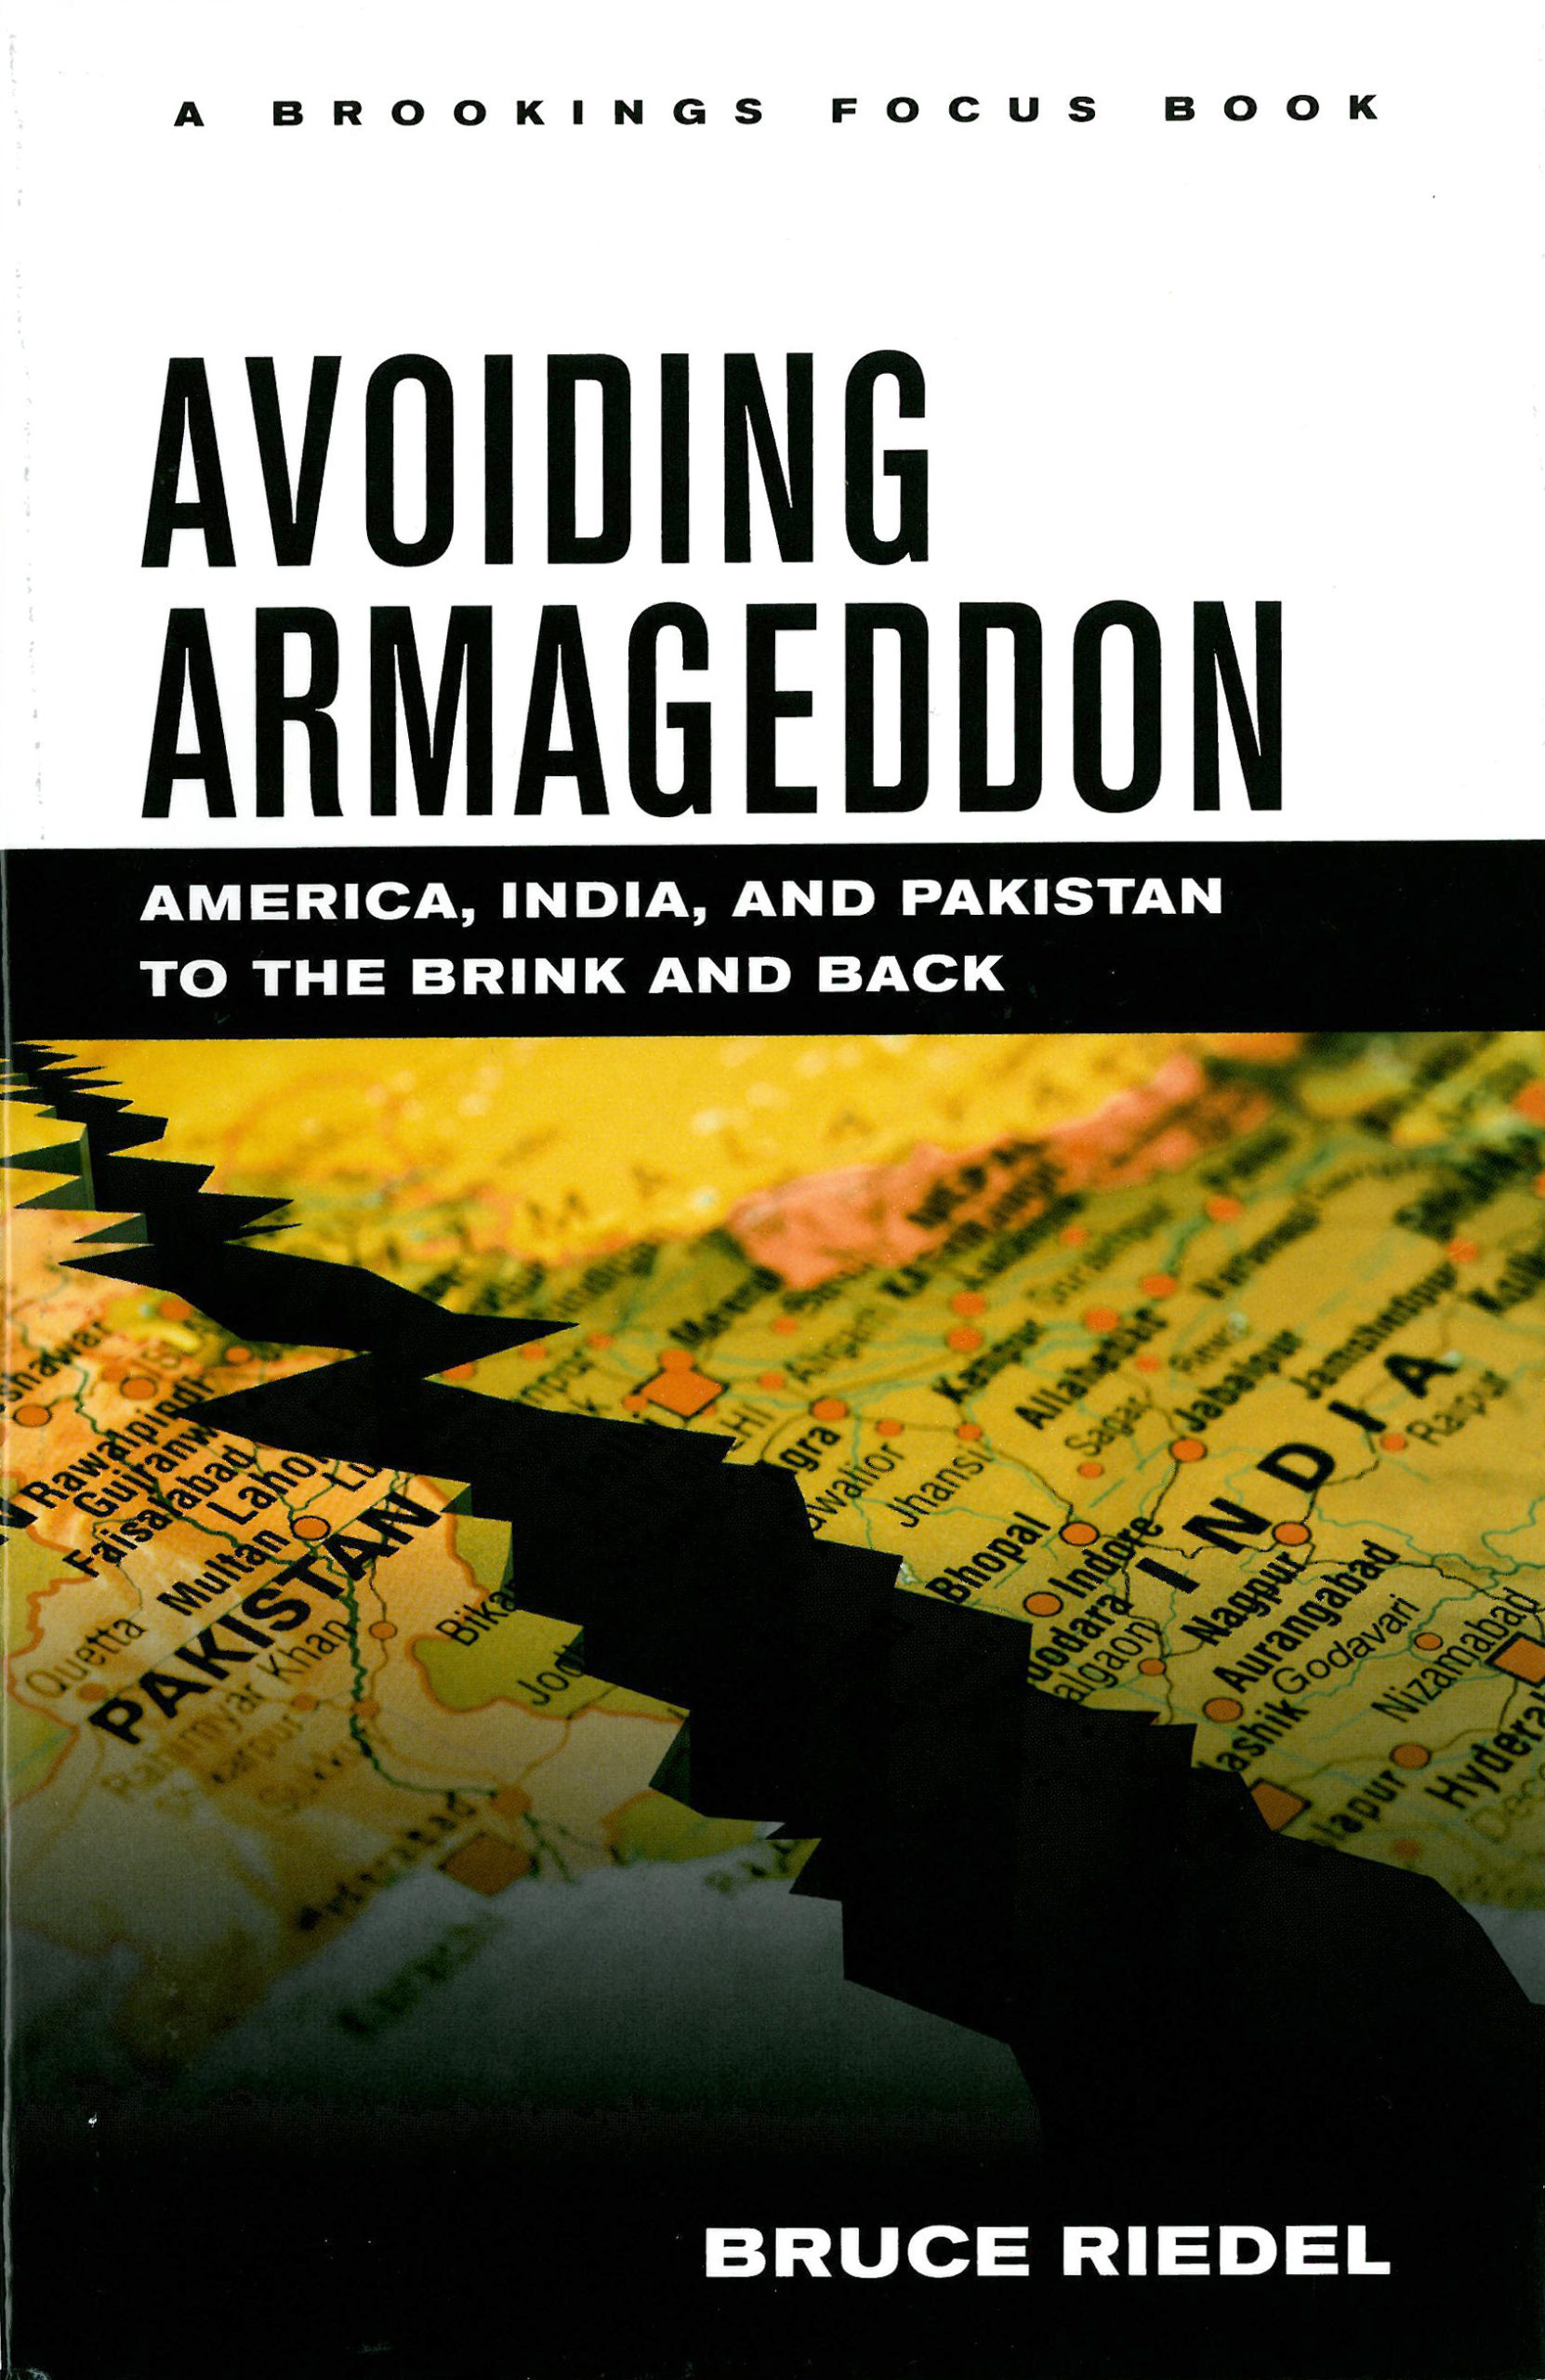 Bruce Riedel: Avoiding Armageddon: America, India and Pakistan to the Brink and Back. Brookings Institution Press 2013, 230 s.